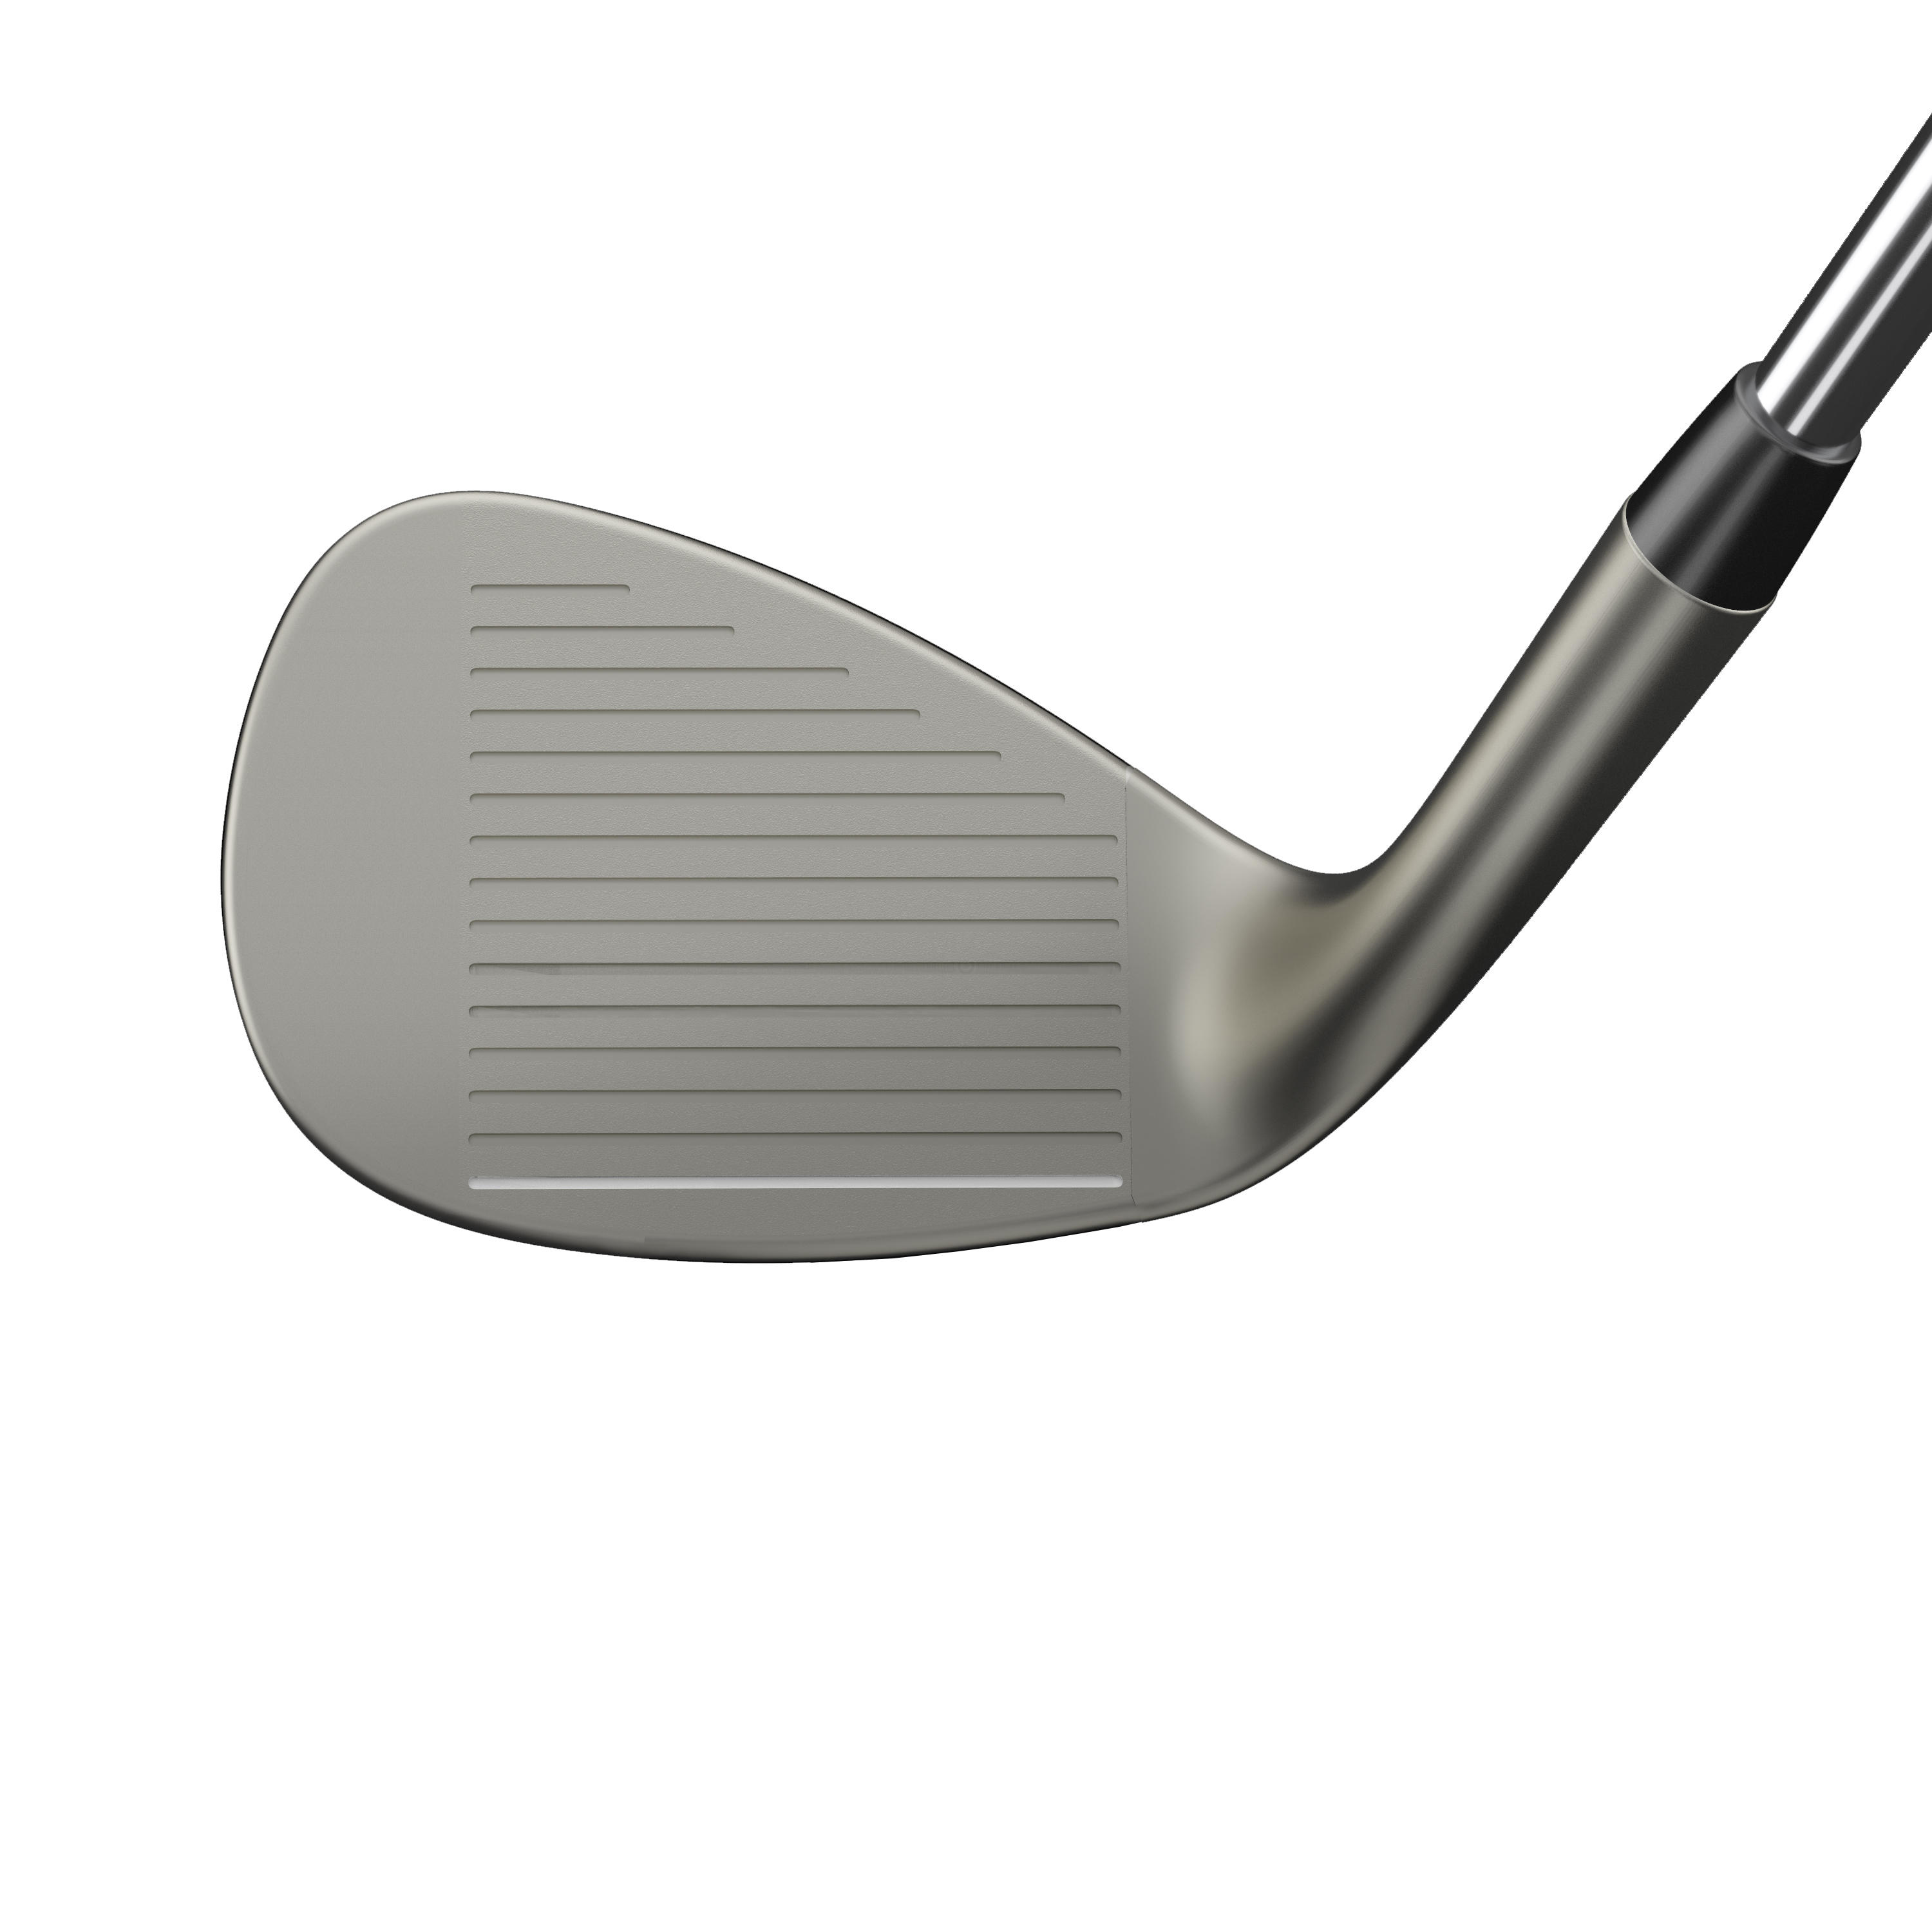 WEDGE golf homme droitier 500 56° tige graphite